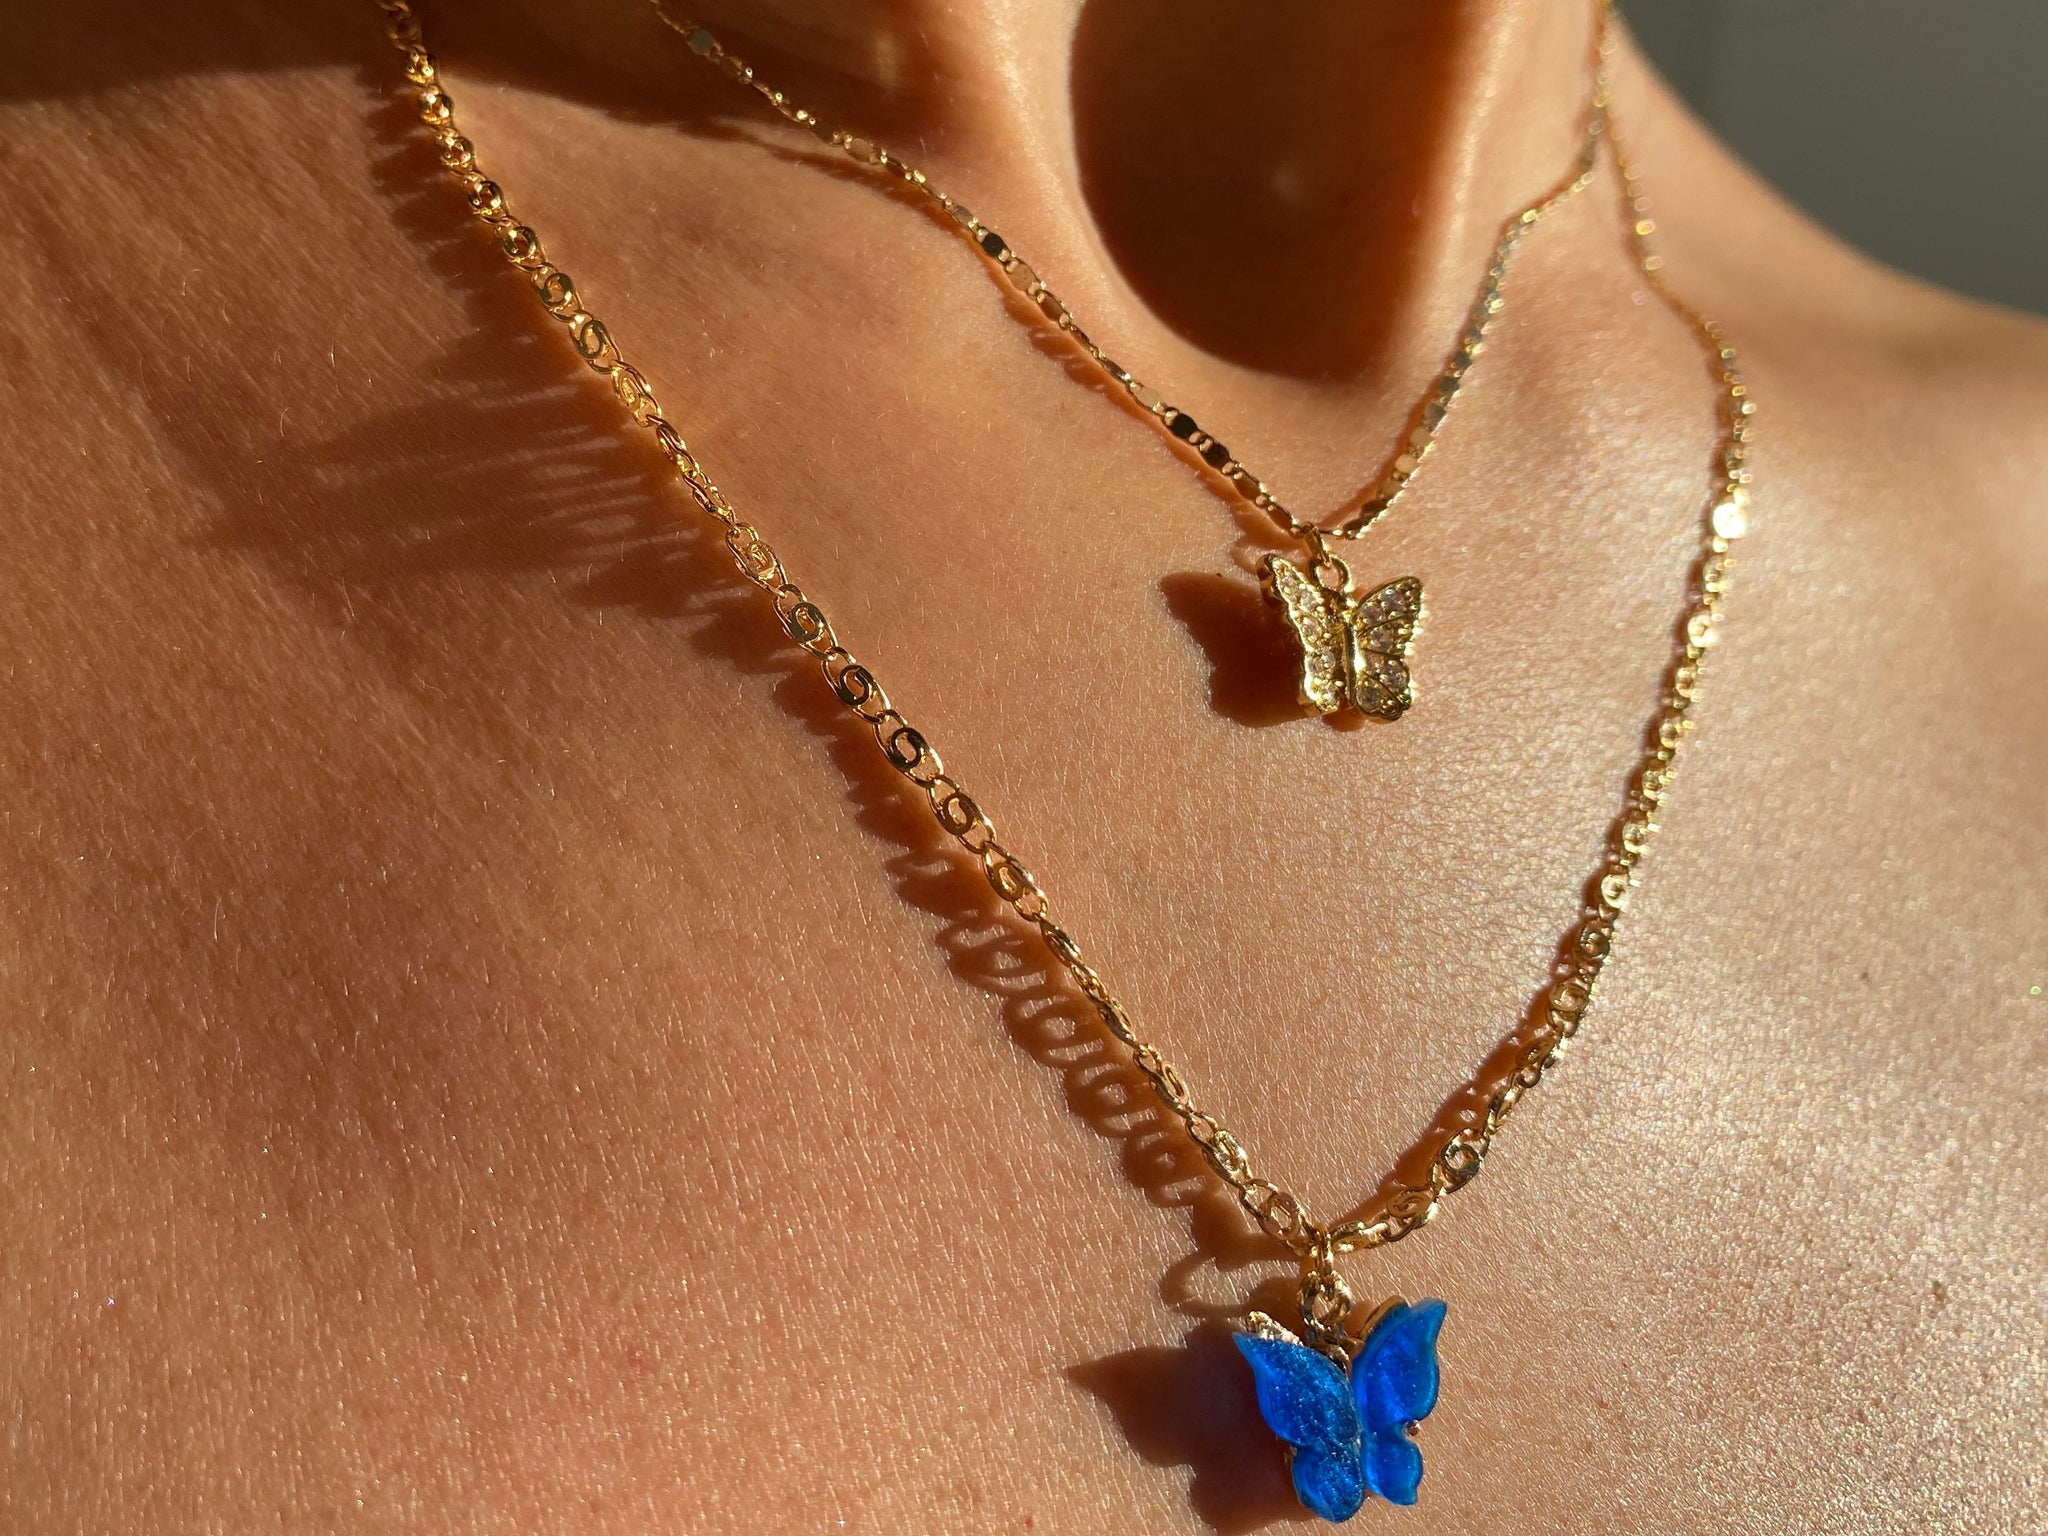 butterfly necklaces, colored butterfly necklaces, blue butterfly charm, dainty butterfly, cute butterly necklace, kylie necklacces, gold necklace